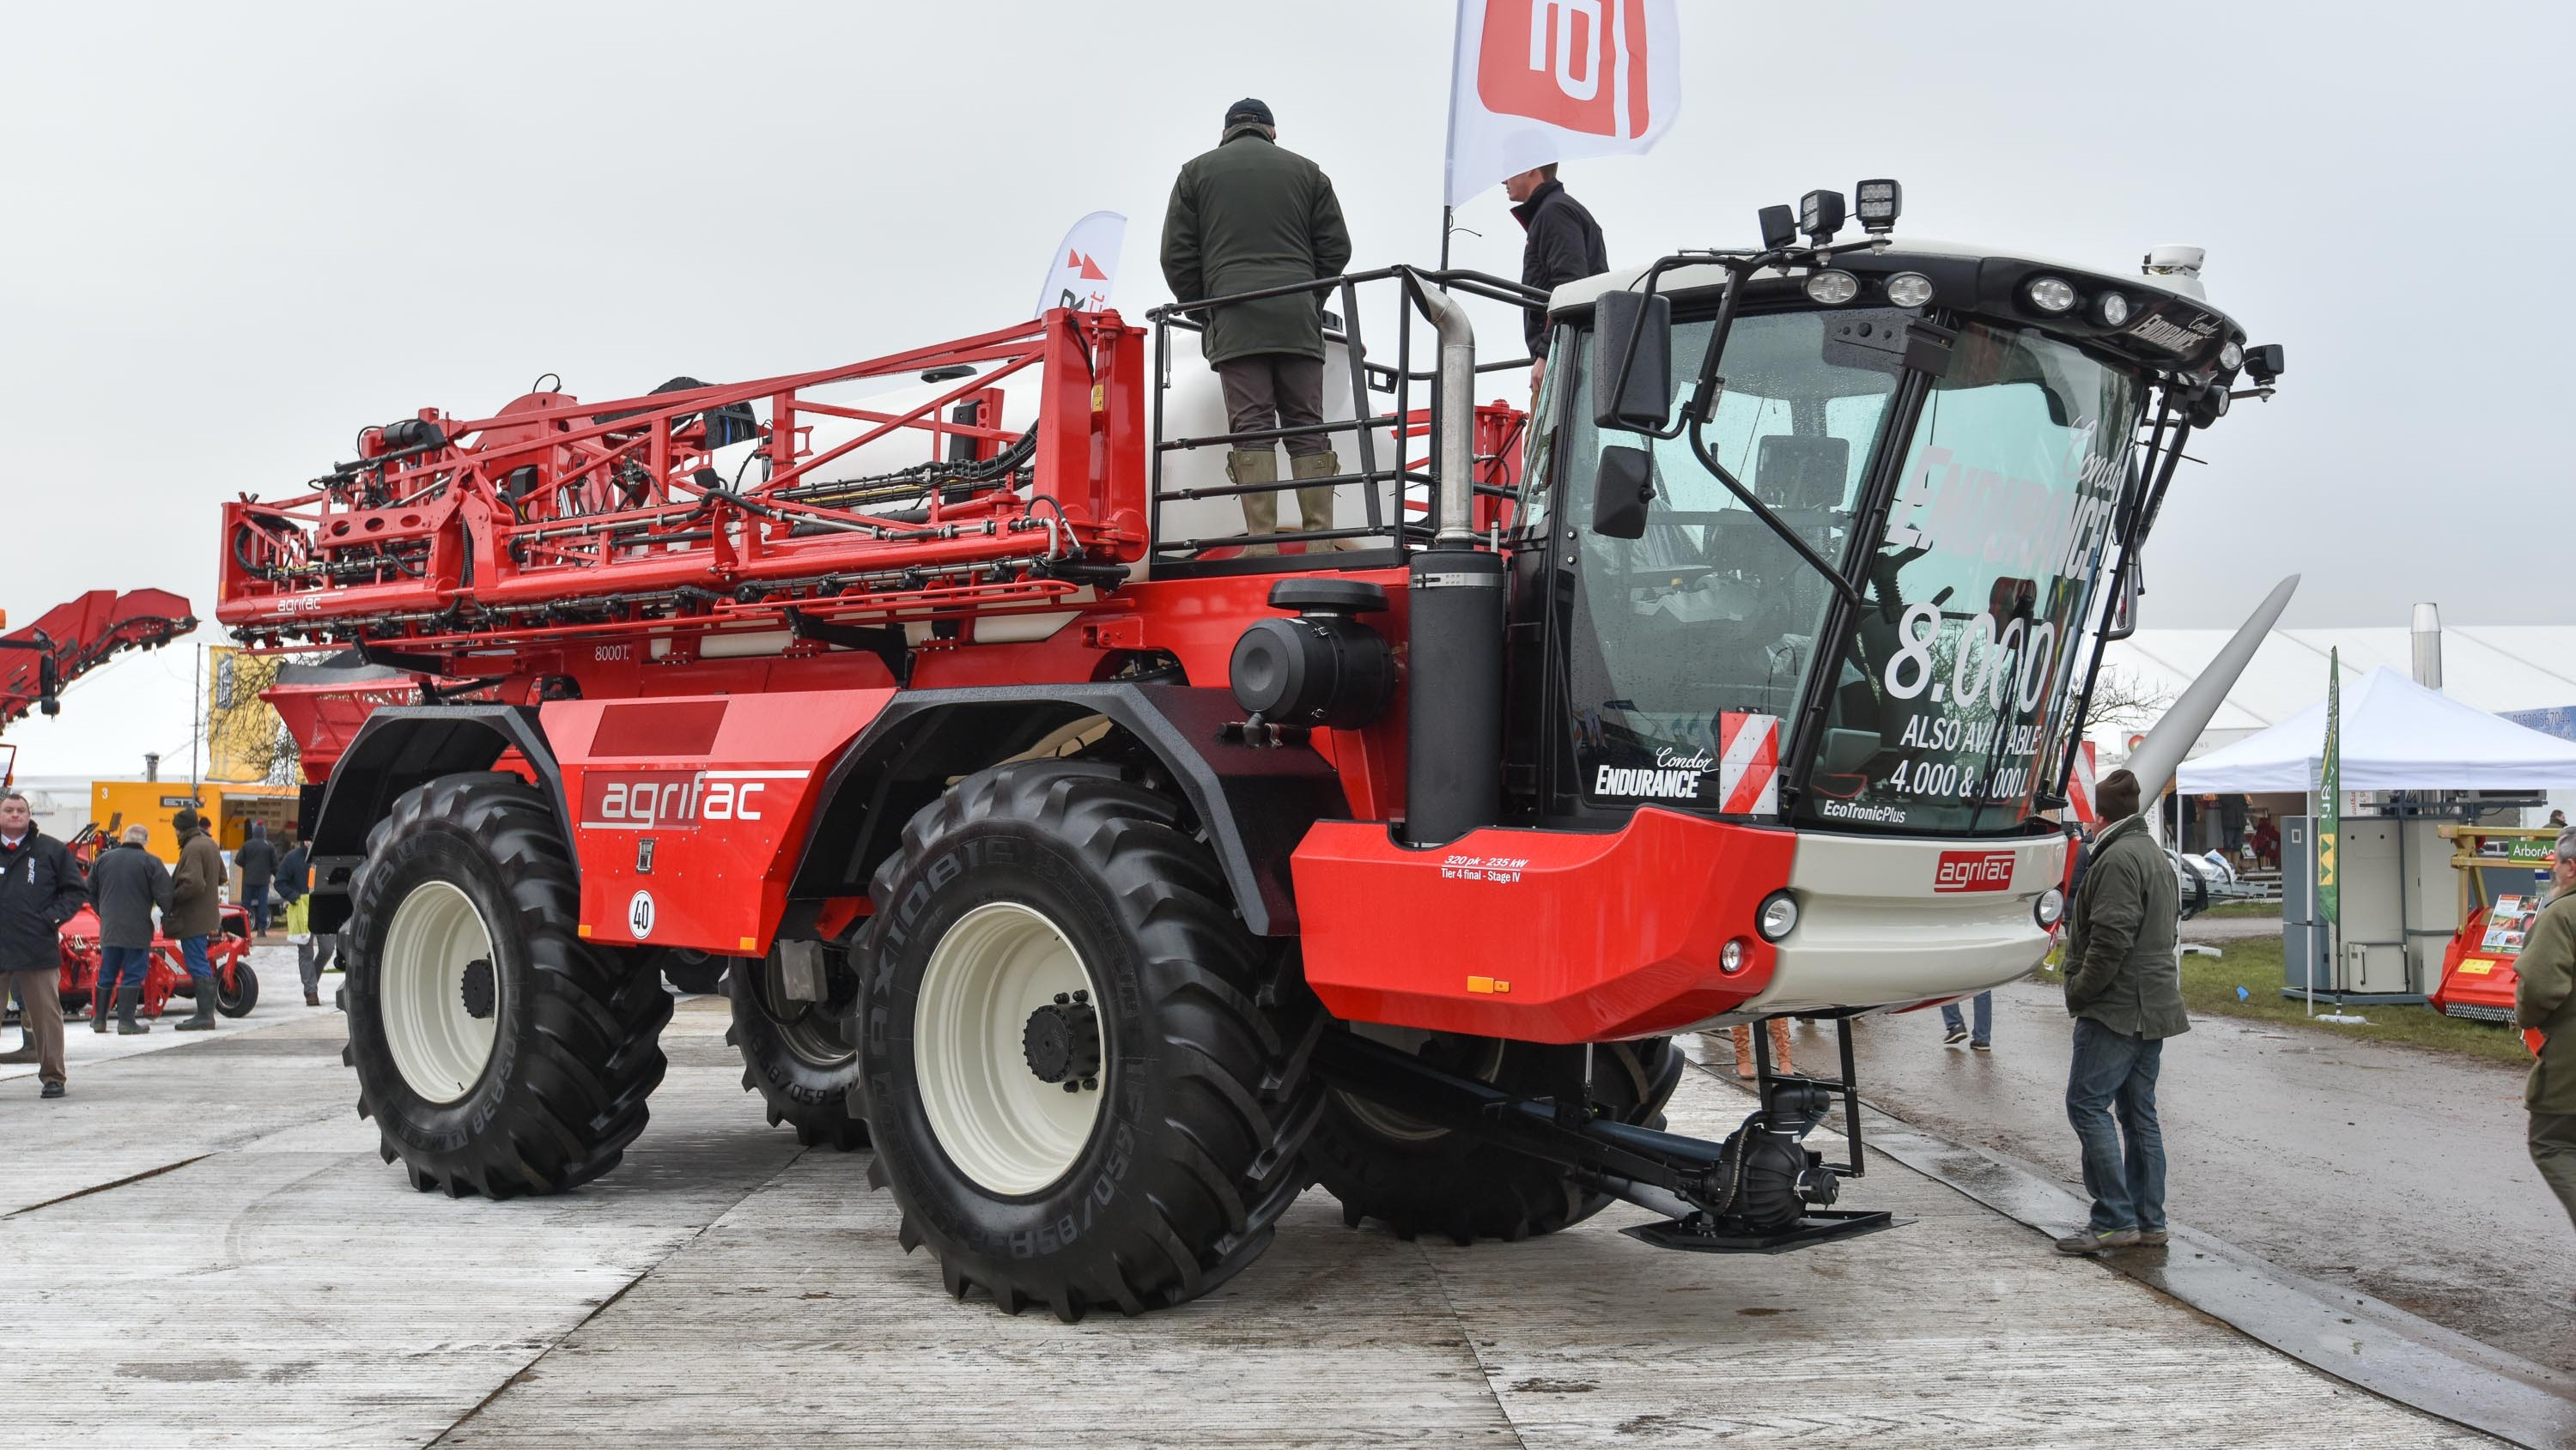 Agrifac Condor Endurance self-propelled sprayer